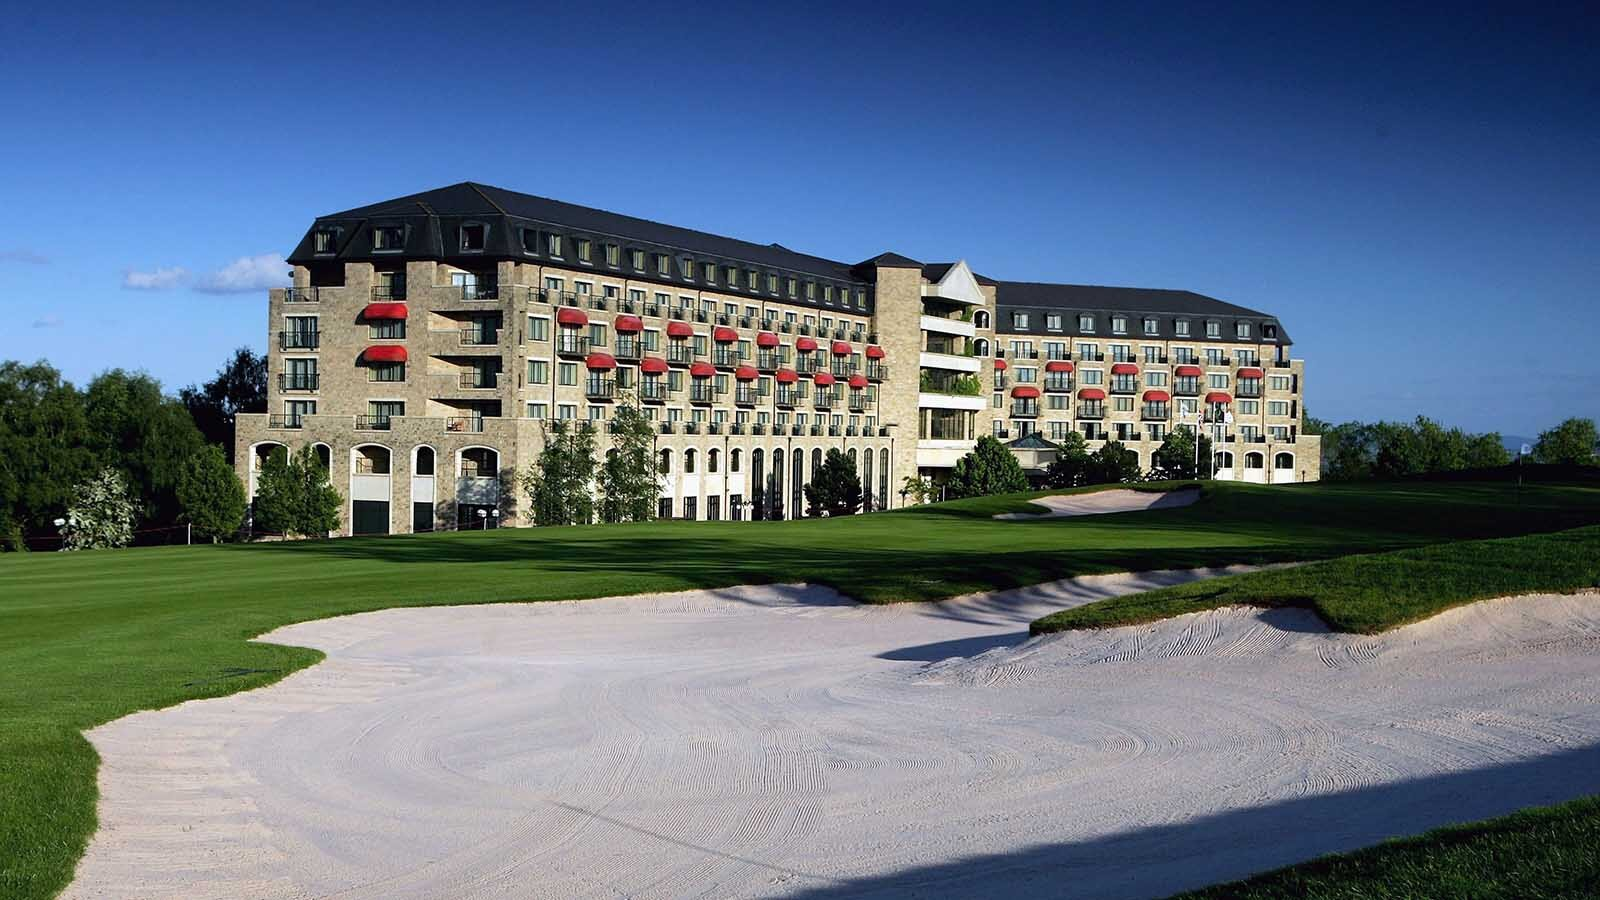 celtic_manor_hotel.jpg